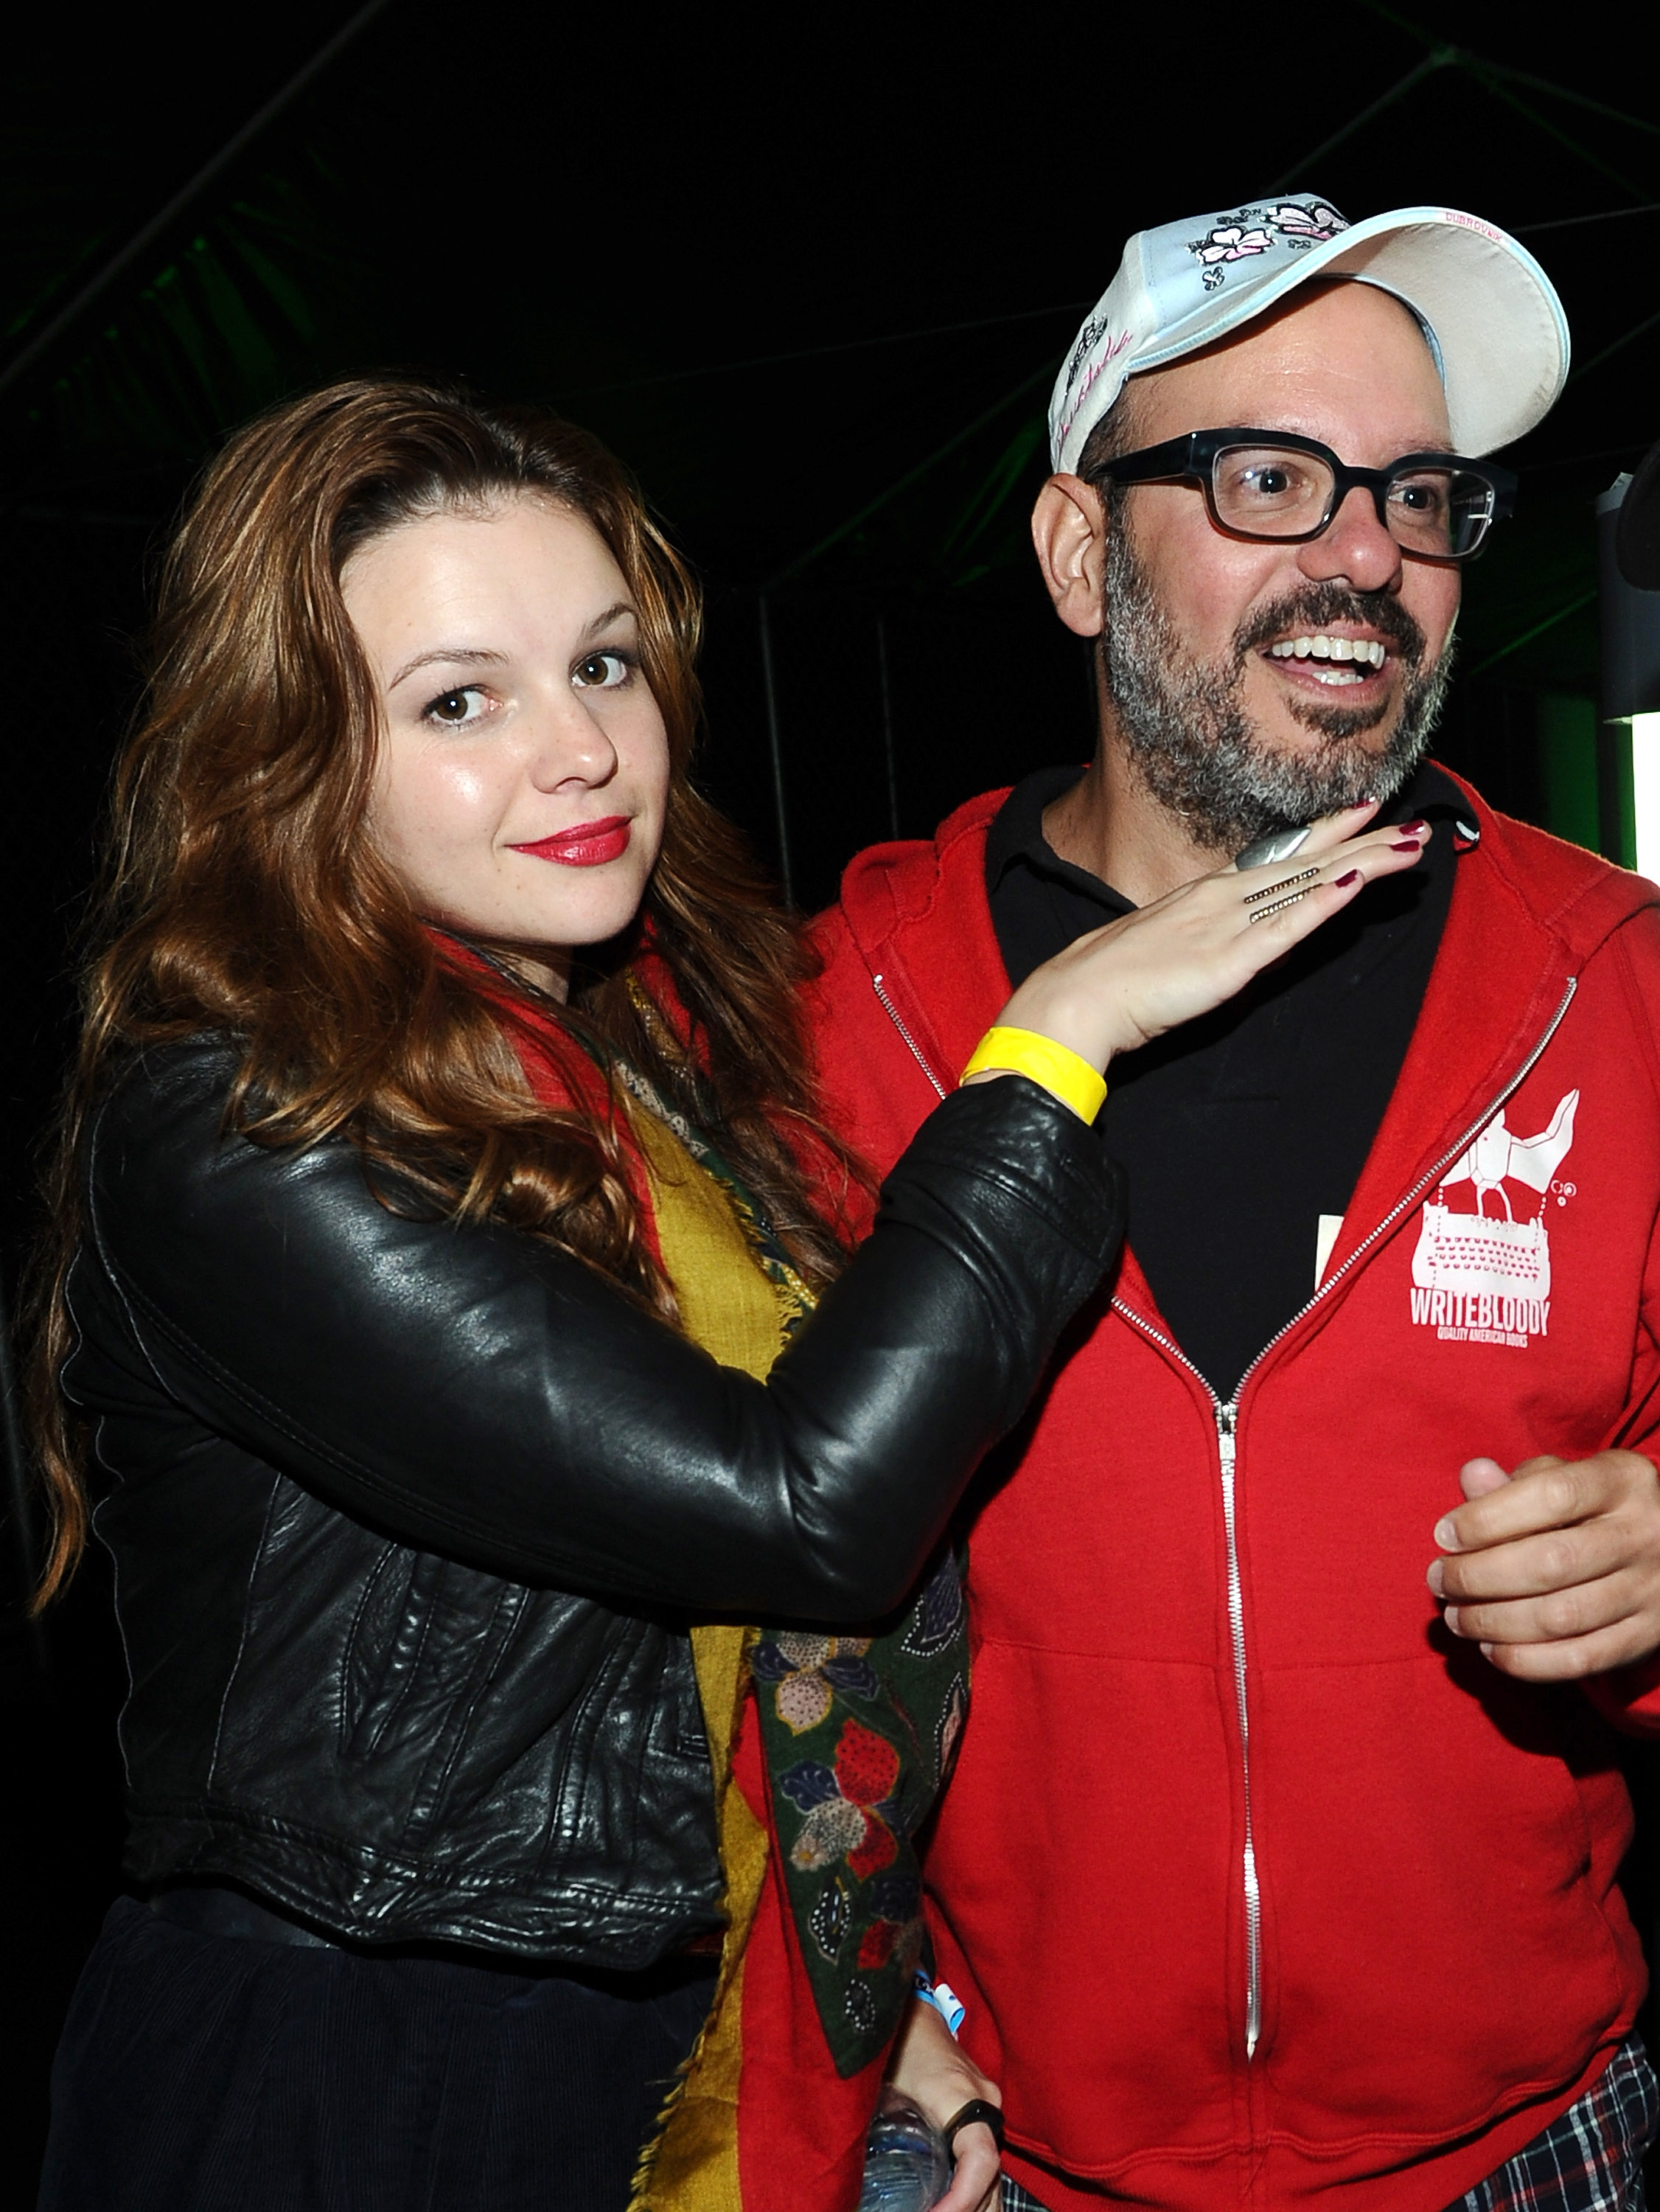 Amber Tamblyn Wedding.David Cross And Amber Tamblyn Get Married The Boston Globe